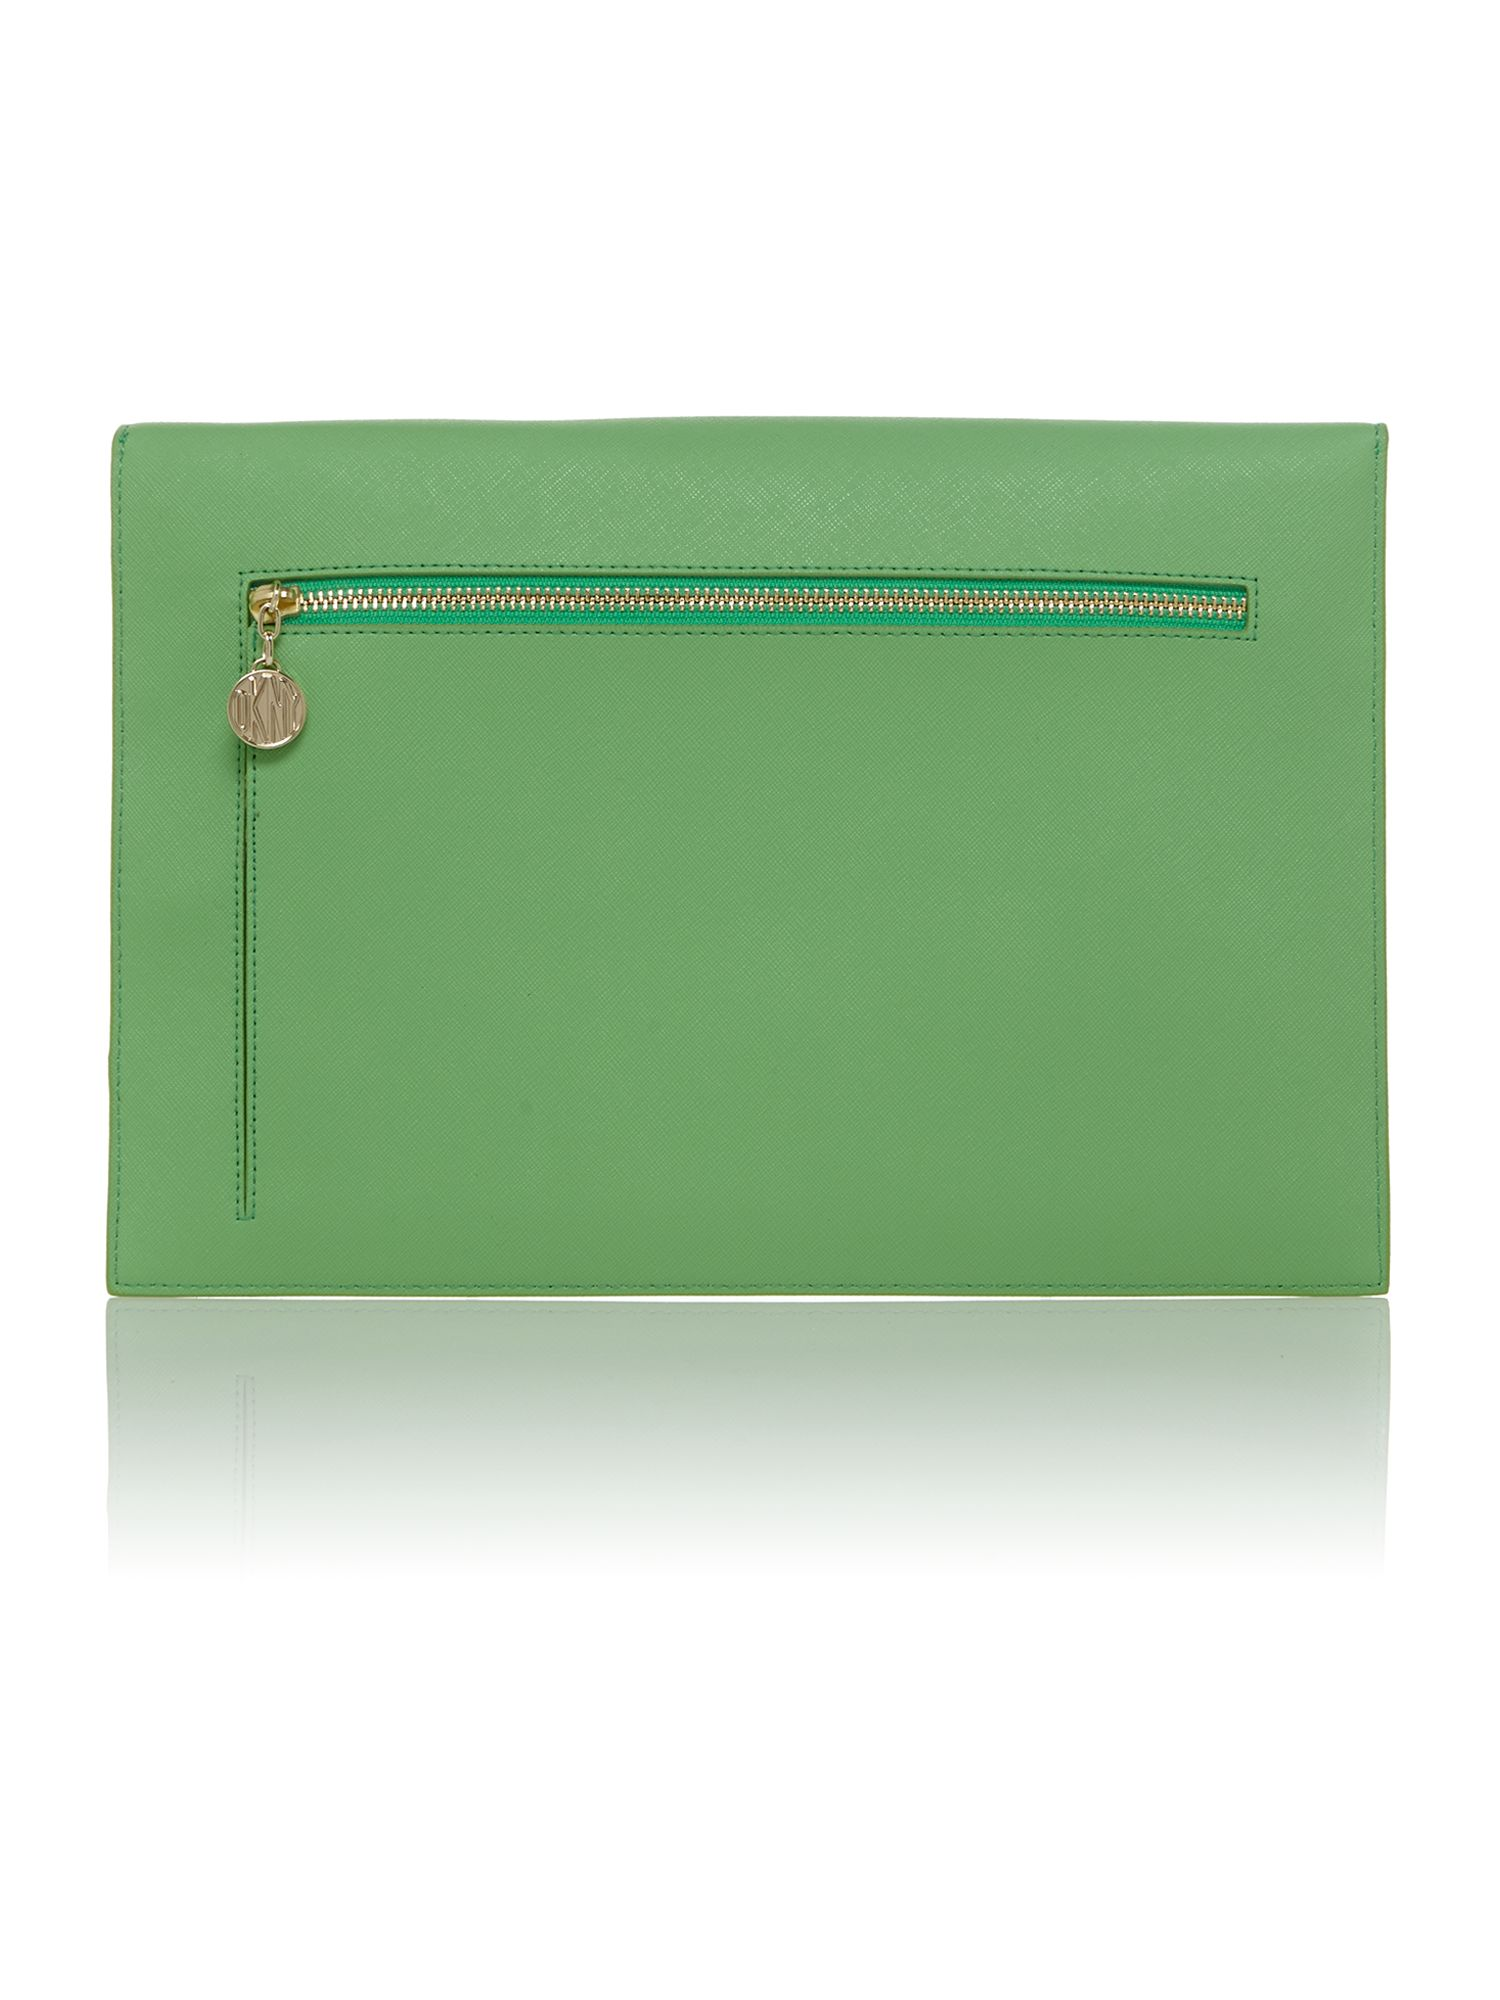 Saffiano green document holder